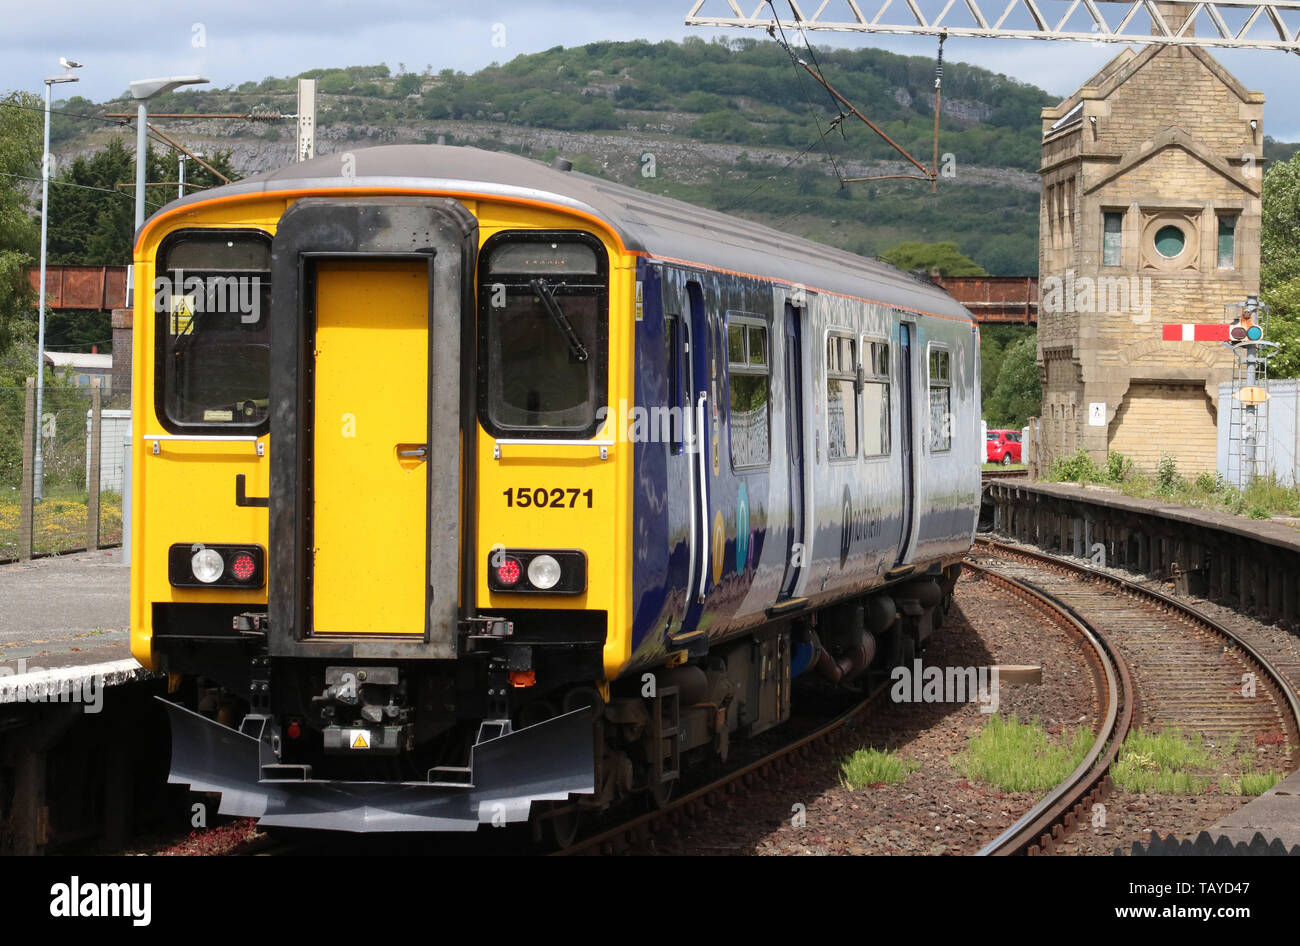 In gleaming new livery, Northern class 150 sprinter diesel multiple unit train leaving Carnforth station with a passenger service on 27th May 2019. - Stock Image